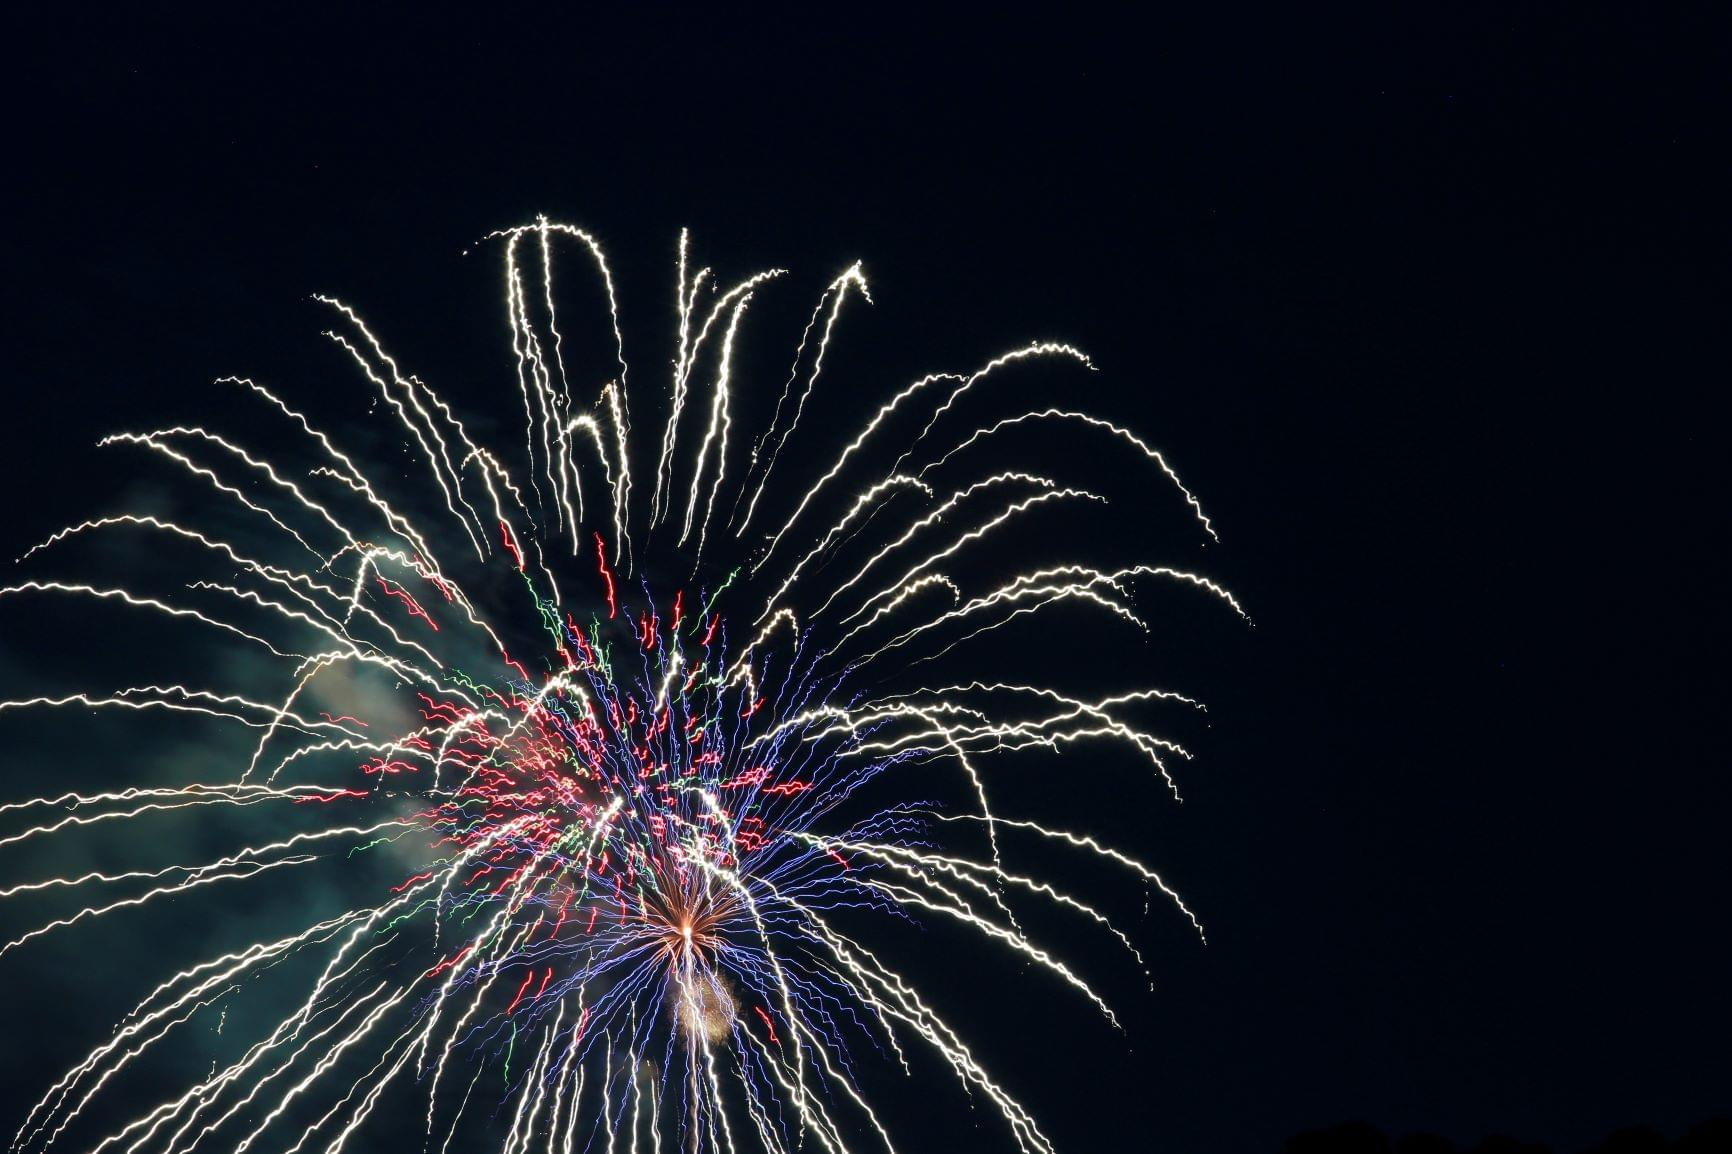 SJAFB Fireworks Show Set For 9 PM Tonight